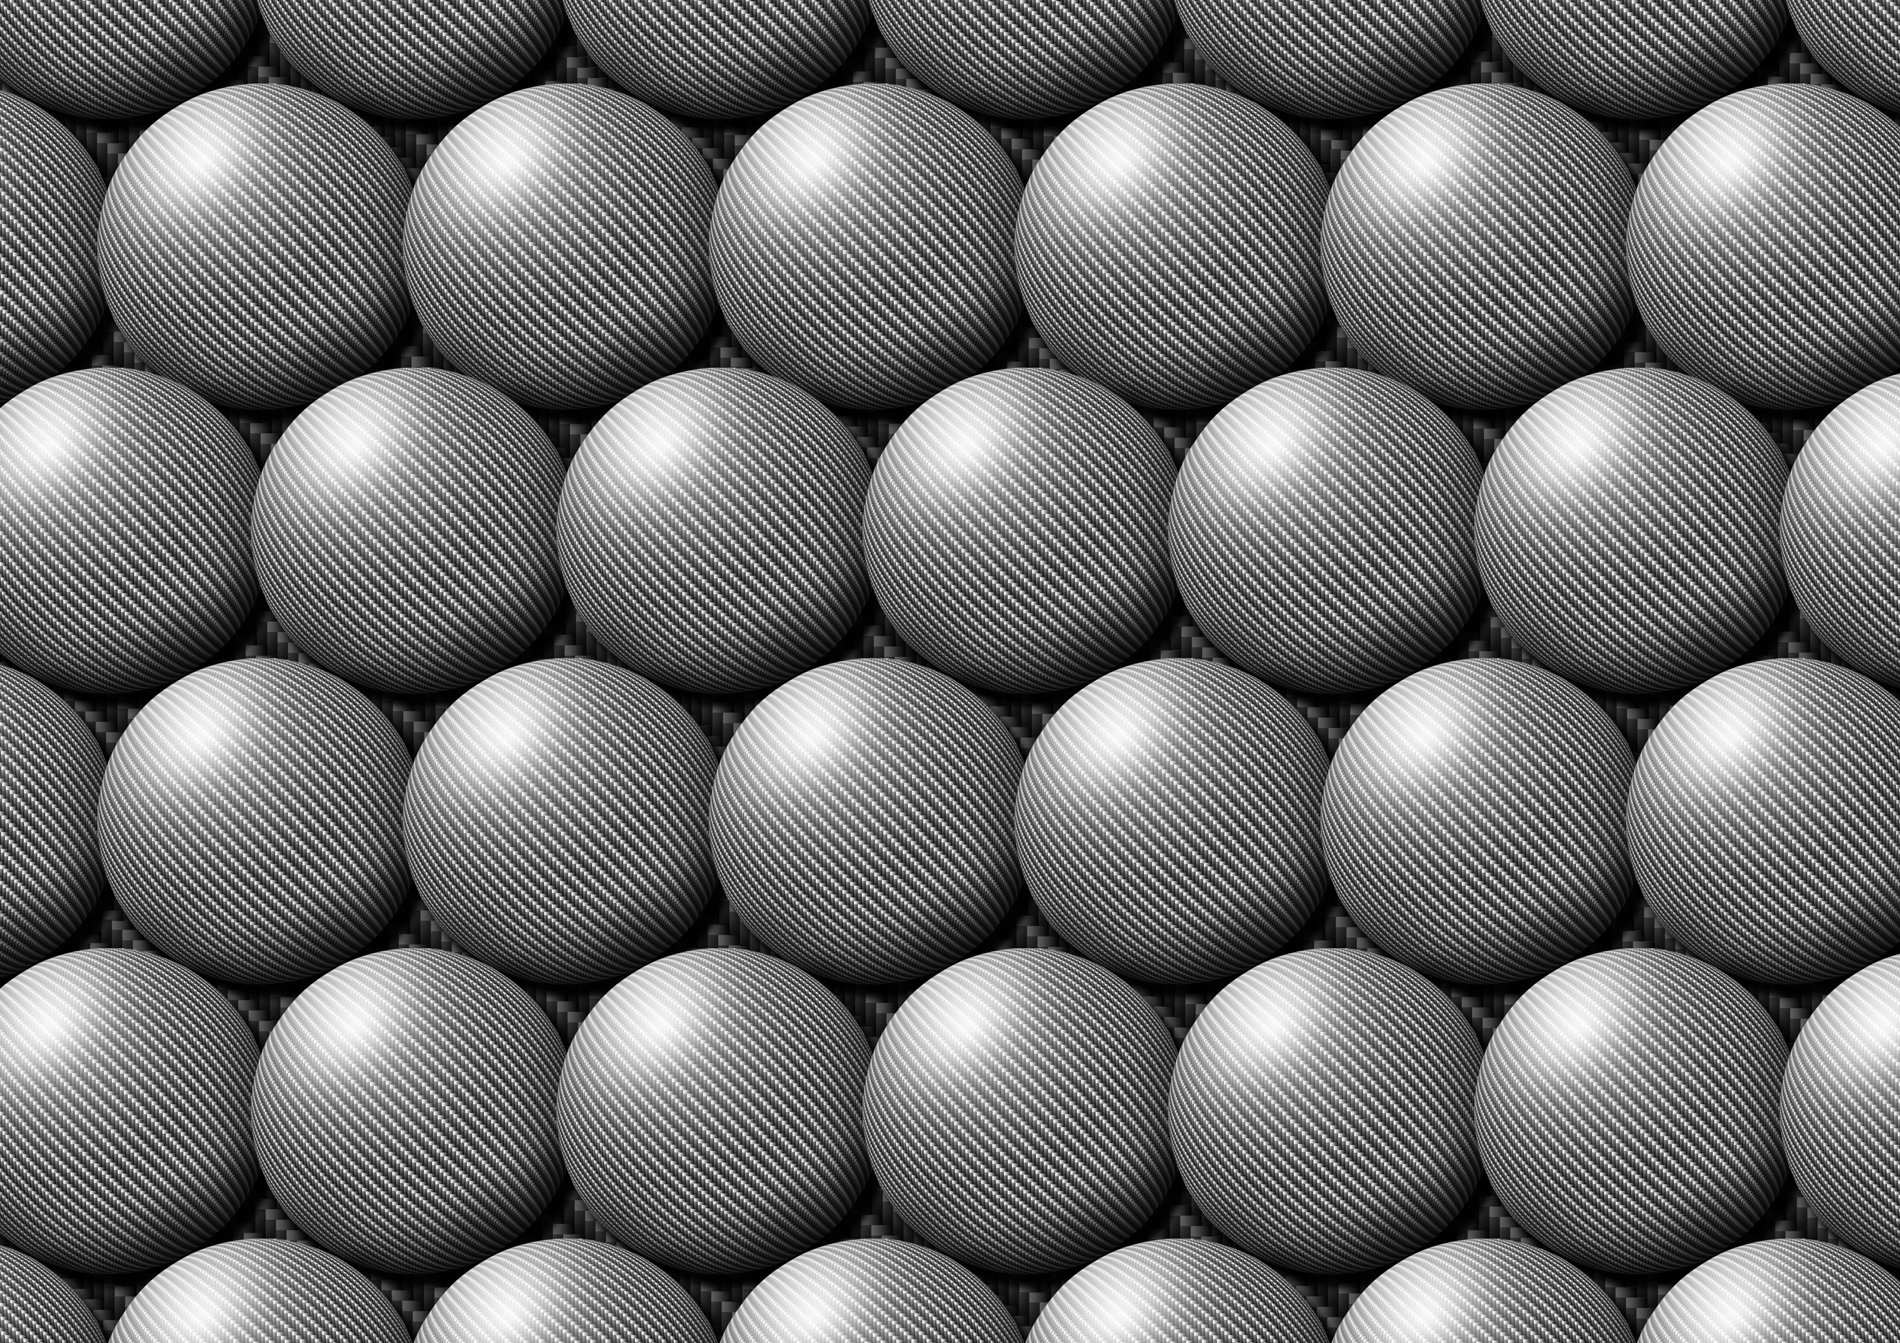 Metallic balls background